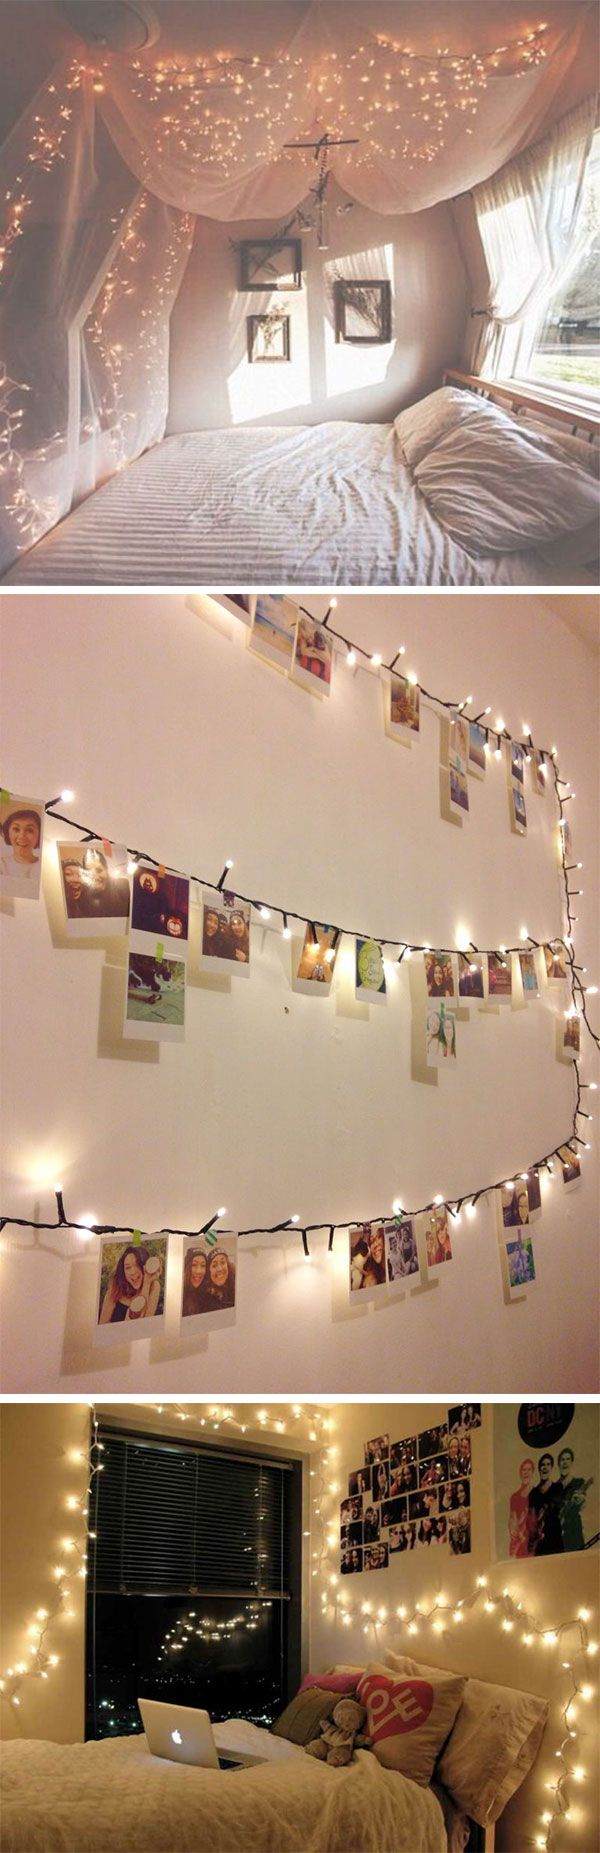 13 ways to use fairy lights to make your home look magical. Best 25  Diy bedroom decor ideas on Pinterest   Diy bedroom